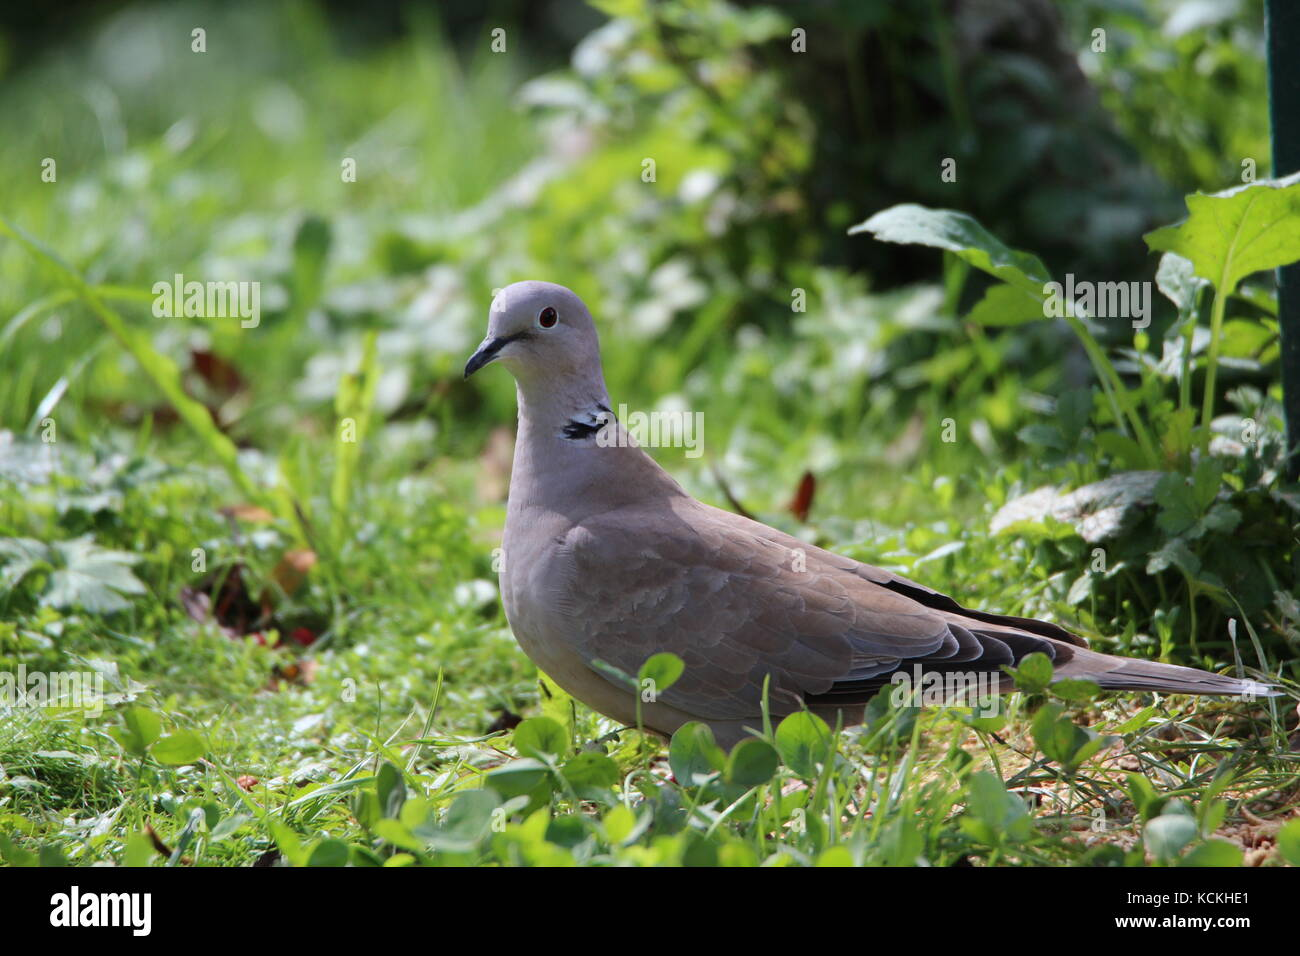 Eurasian collared Dove in das grüne Gras Stockfoto